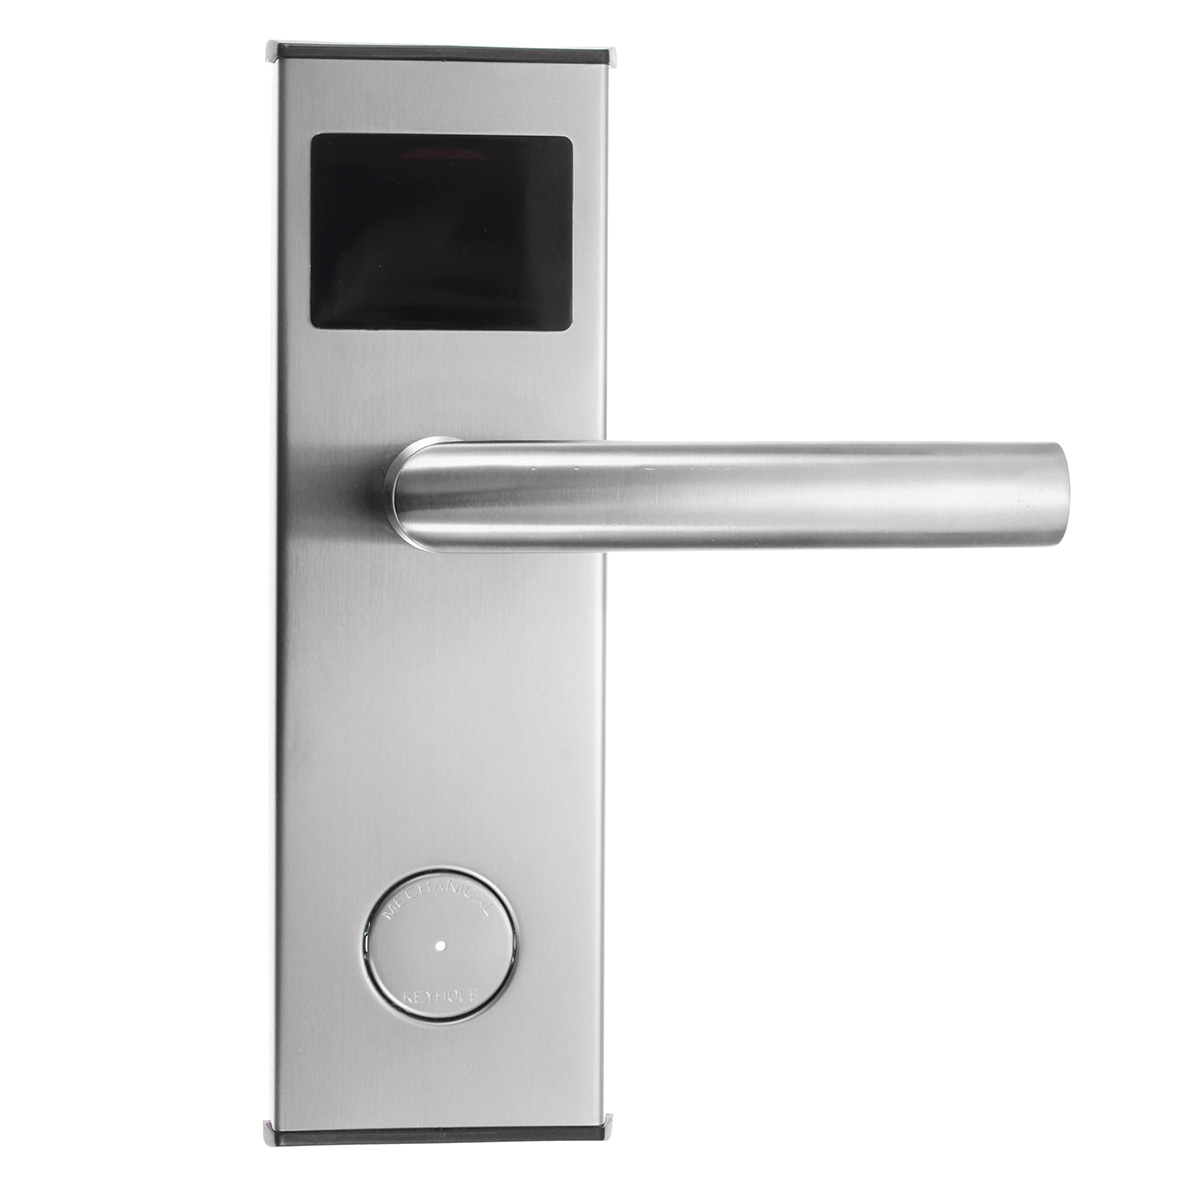 Parts Accessories Stainless Steel Intelligent Rfid Lock Digital Gold Keypad Door Keyless Electronic Card Key Hotel System Color Silver